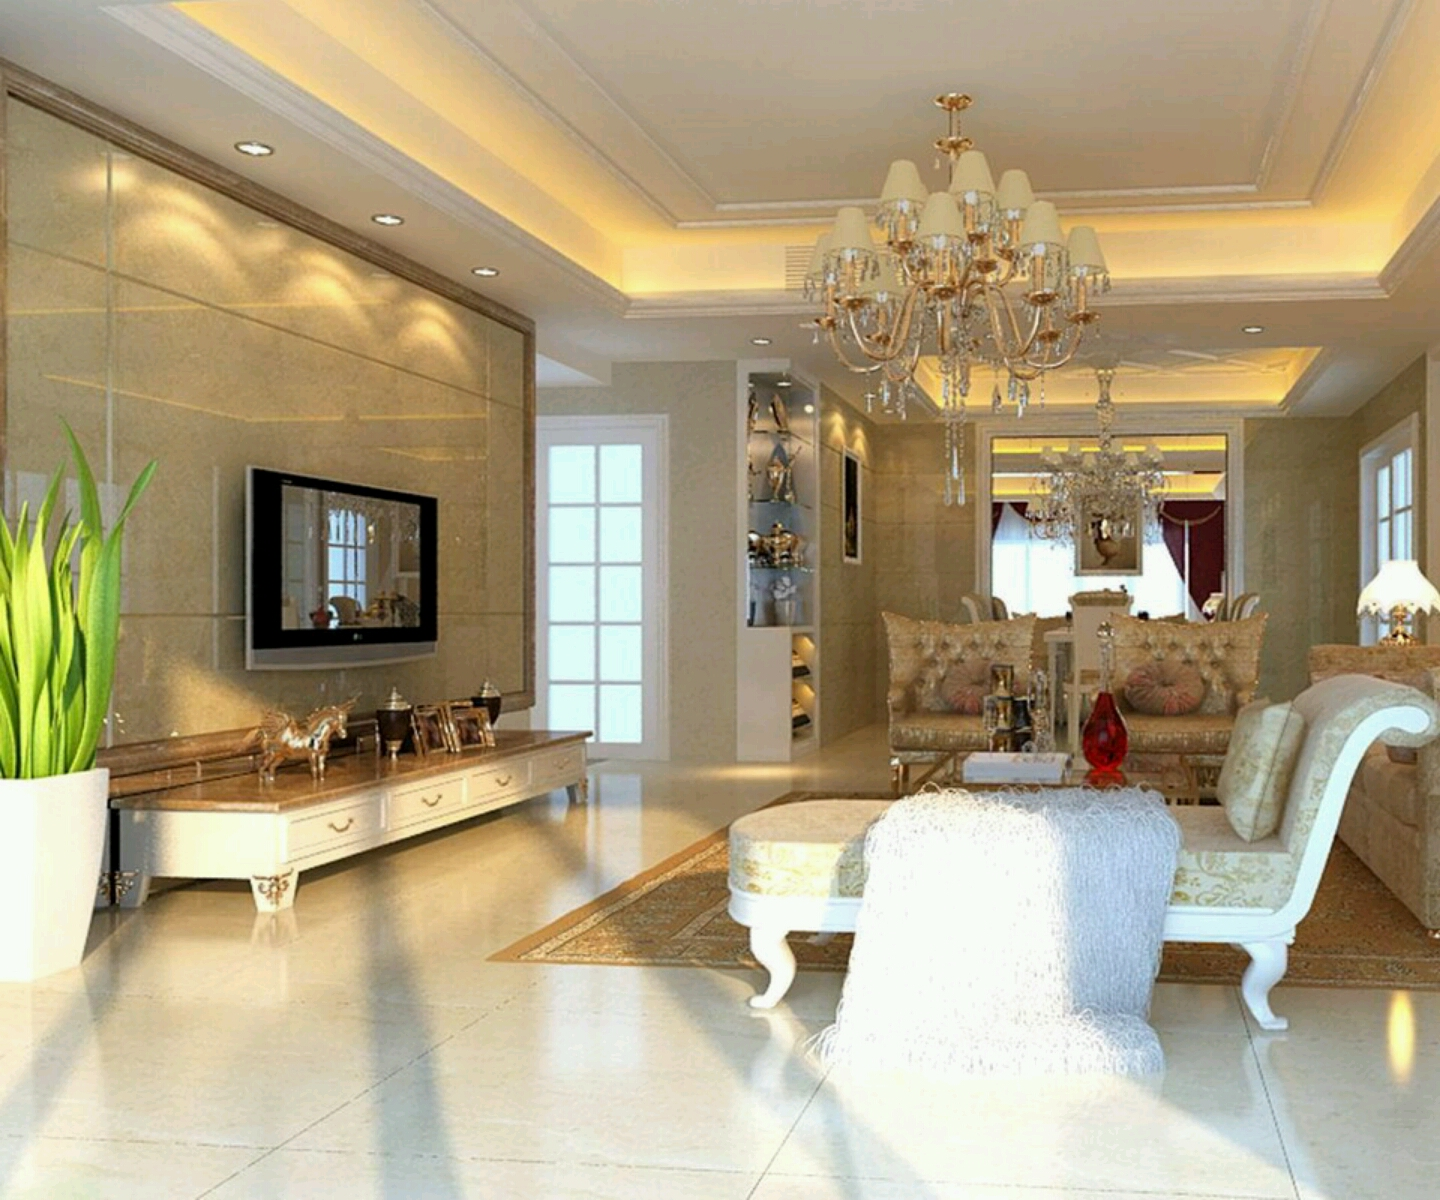 Interior Design Ideas For Home: Luxury Home Interior